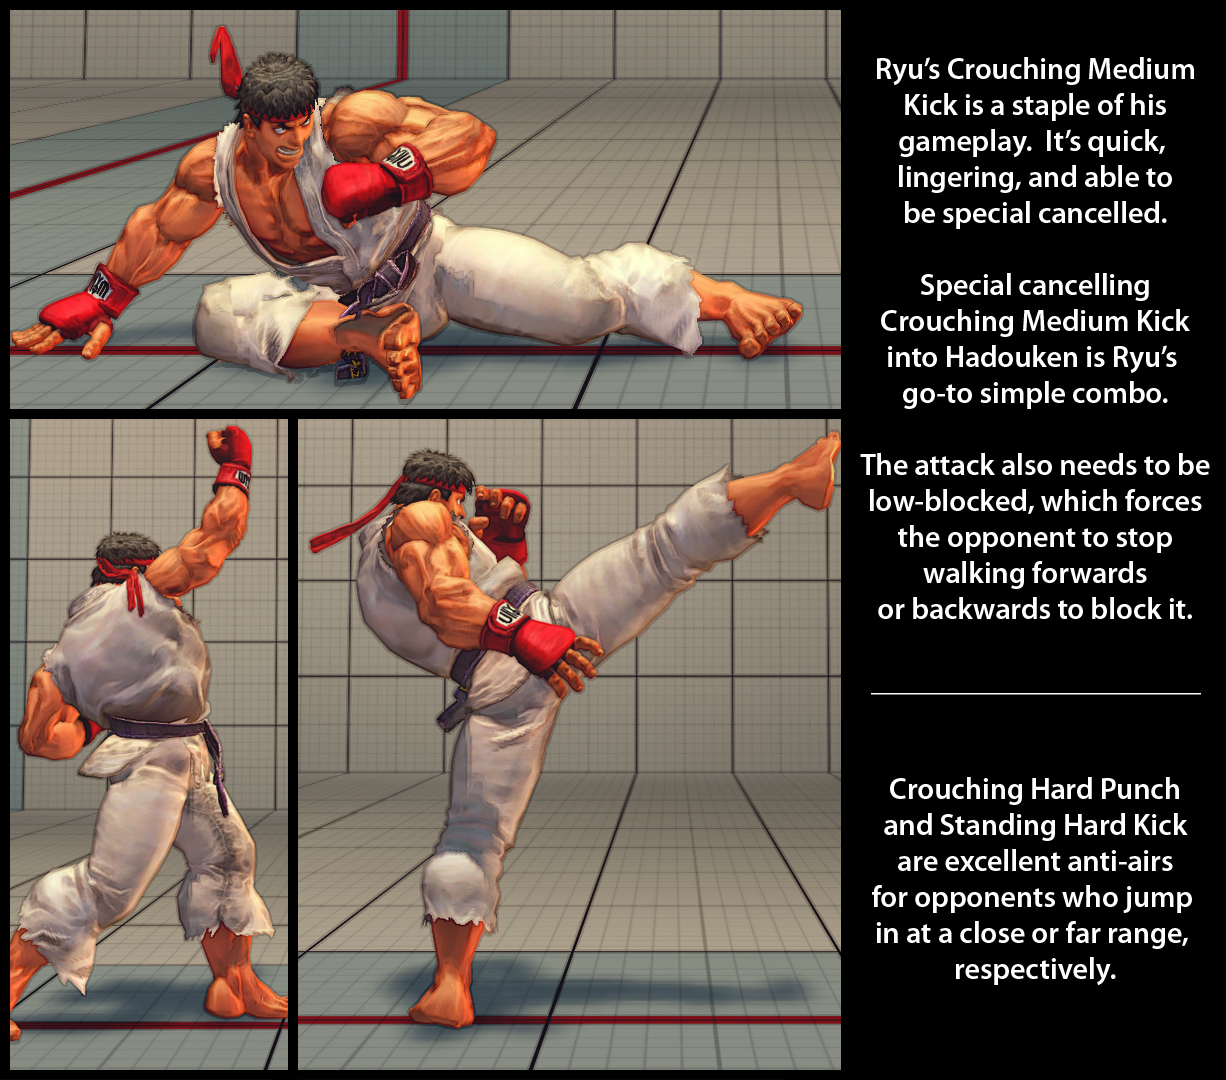 http://www.metalmusicman.com/files/pictures/sf4-gateway-article/ryu-normals.jpg